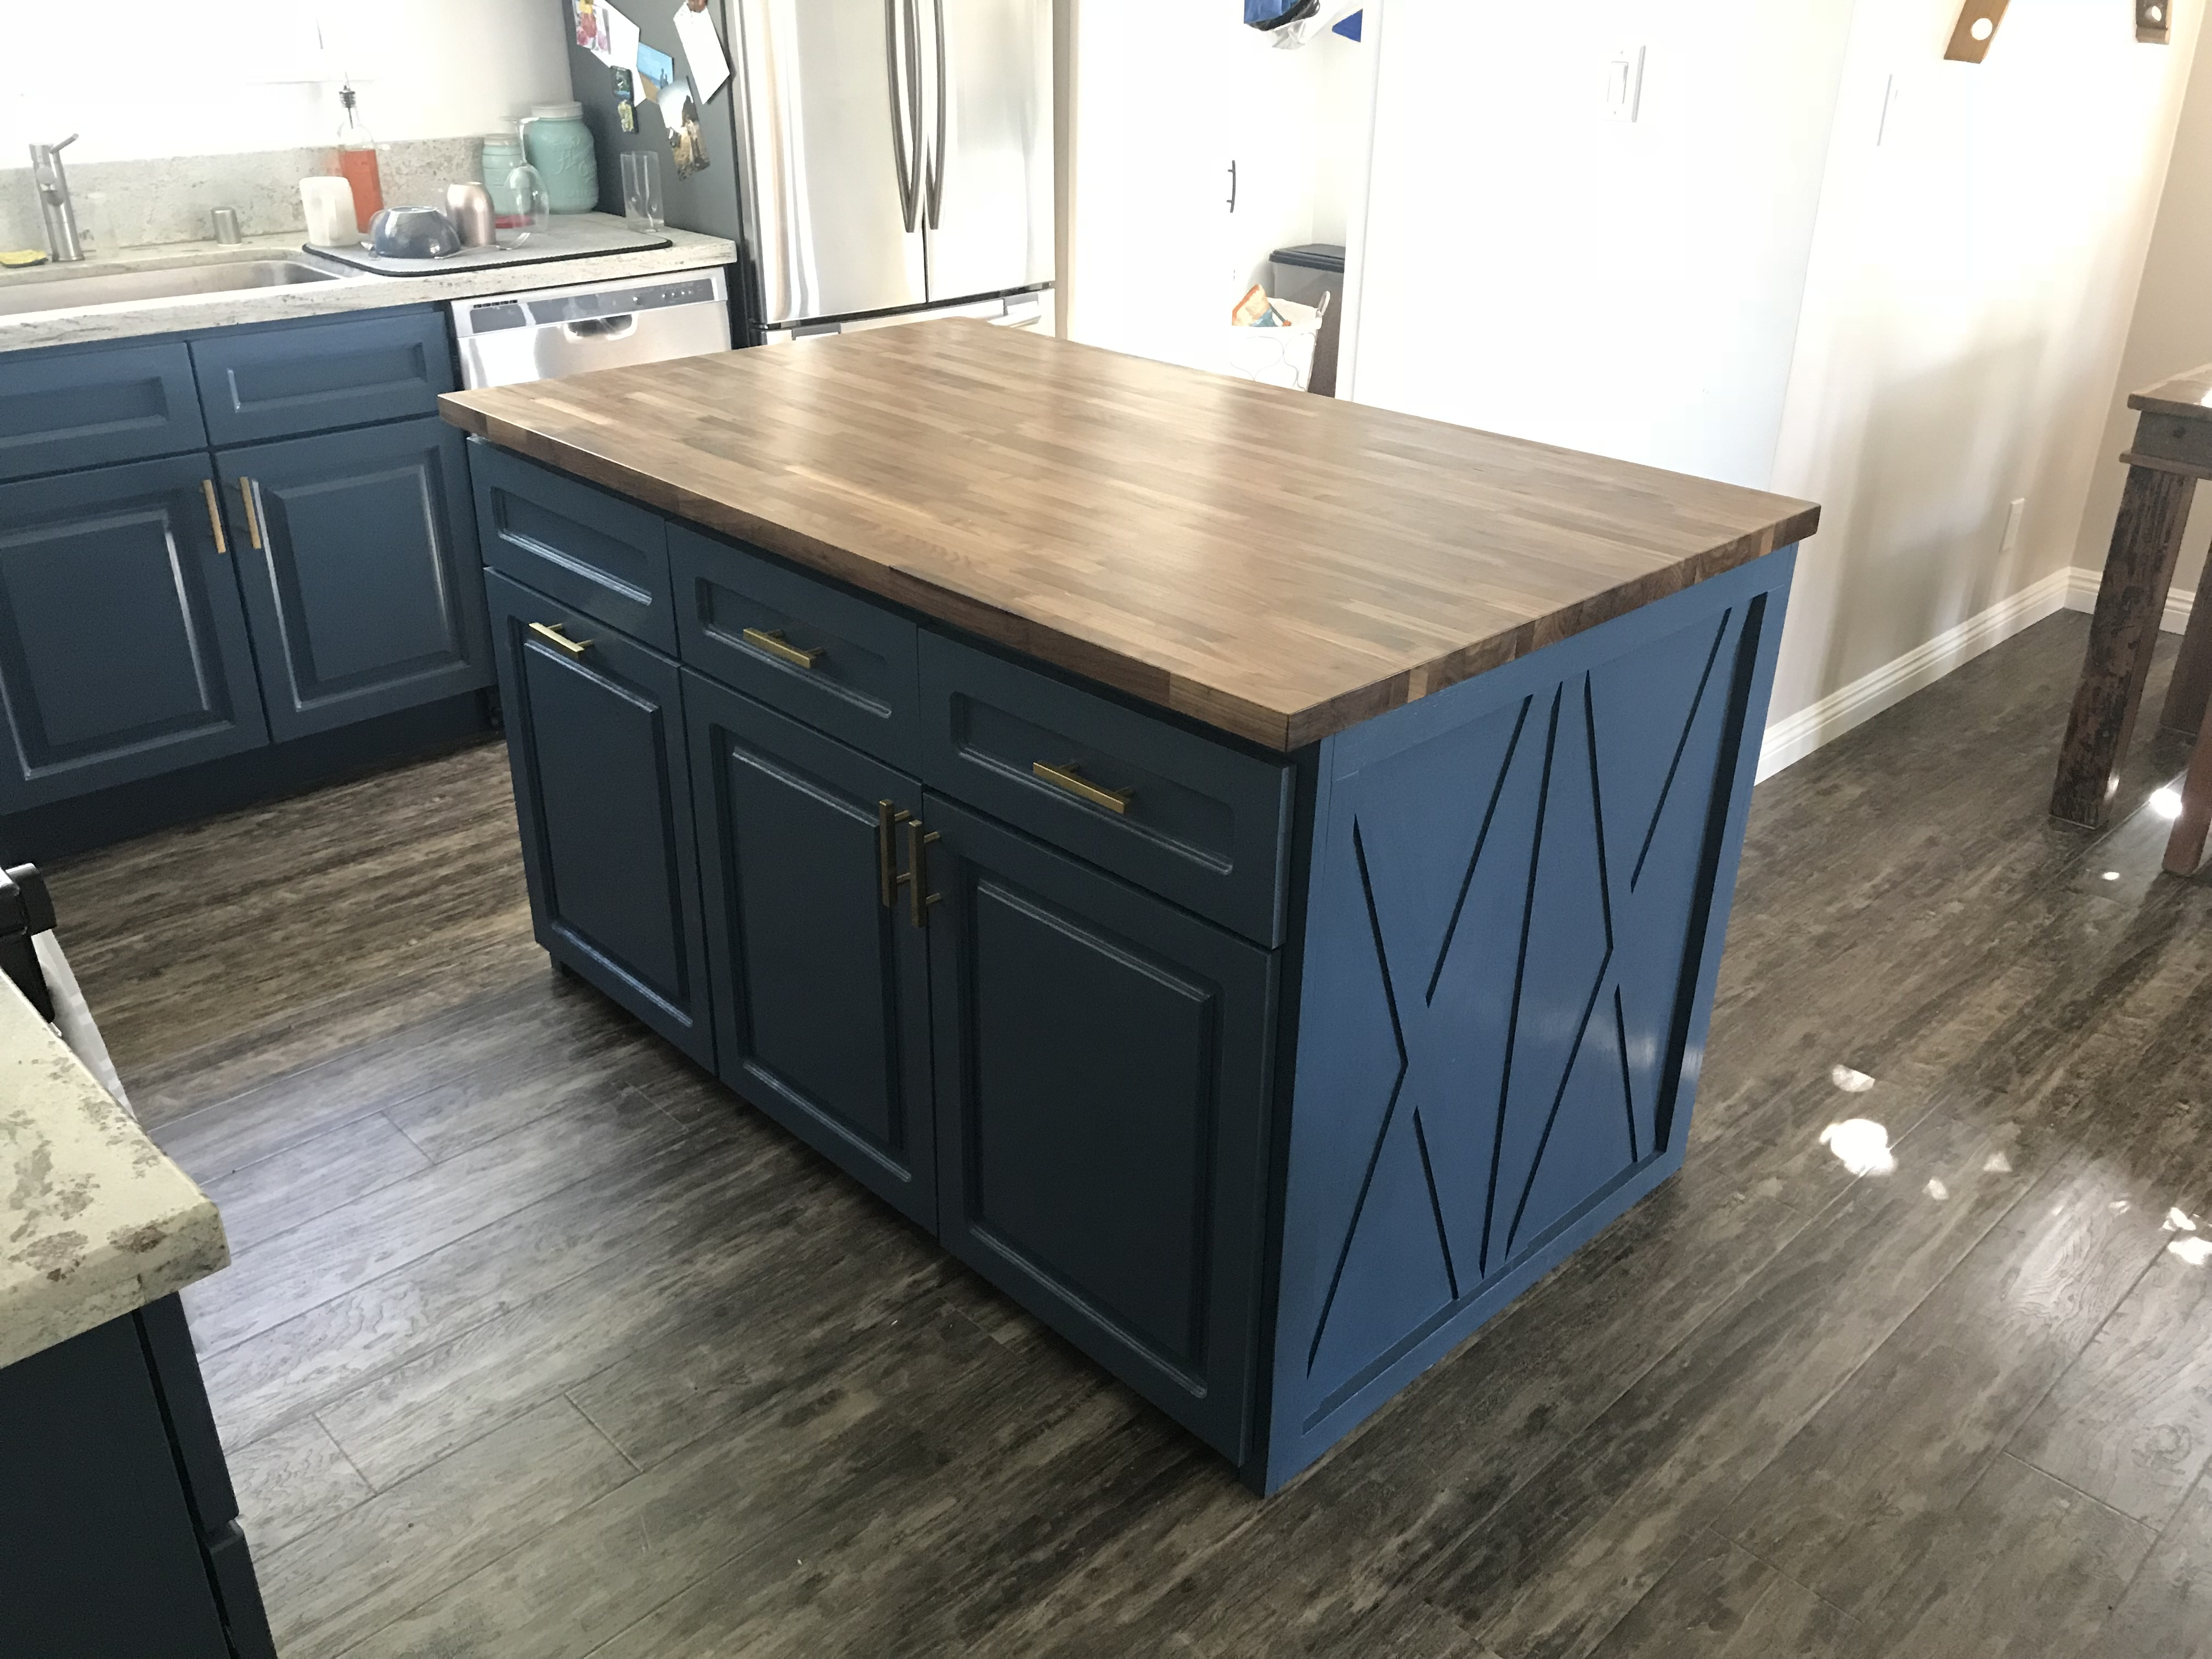 Kitchen Islands Add Beauty Function And Value To The: Building My Own Butcher Block Kitchen Island: 21 Steps